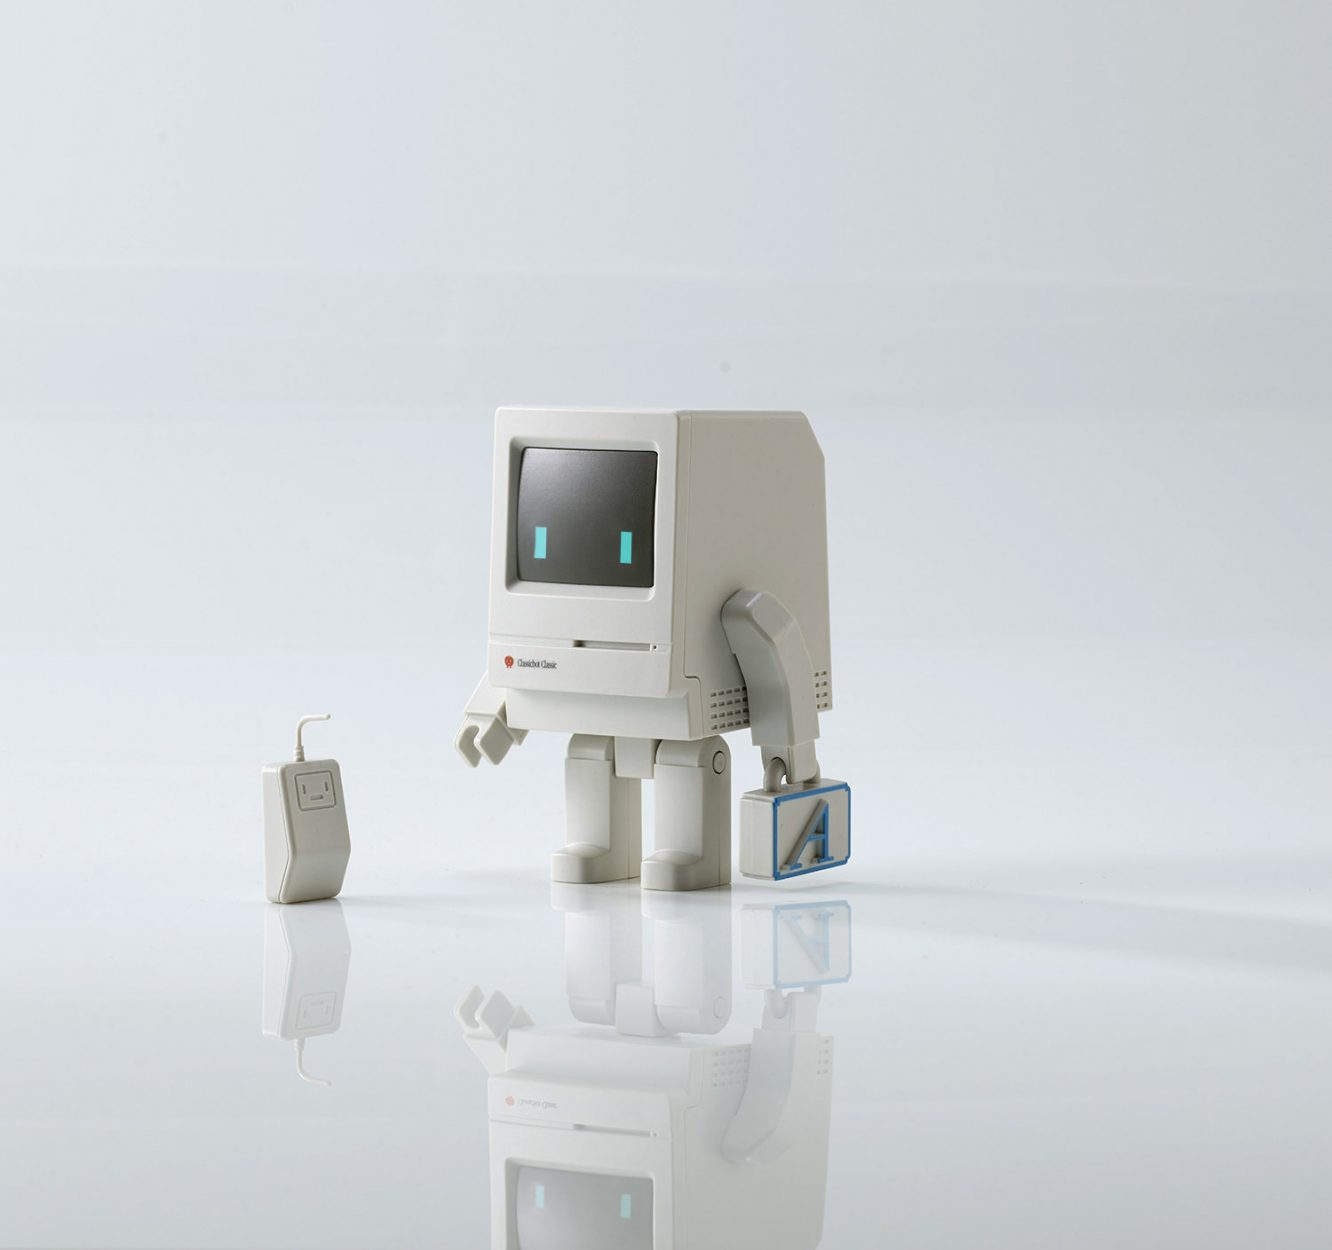 iBot G3 Collectible figure